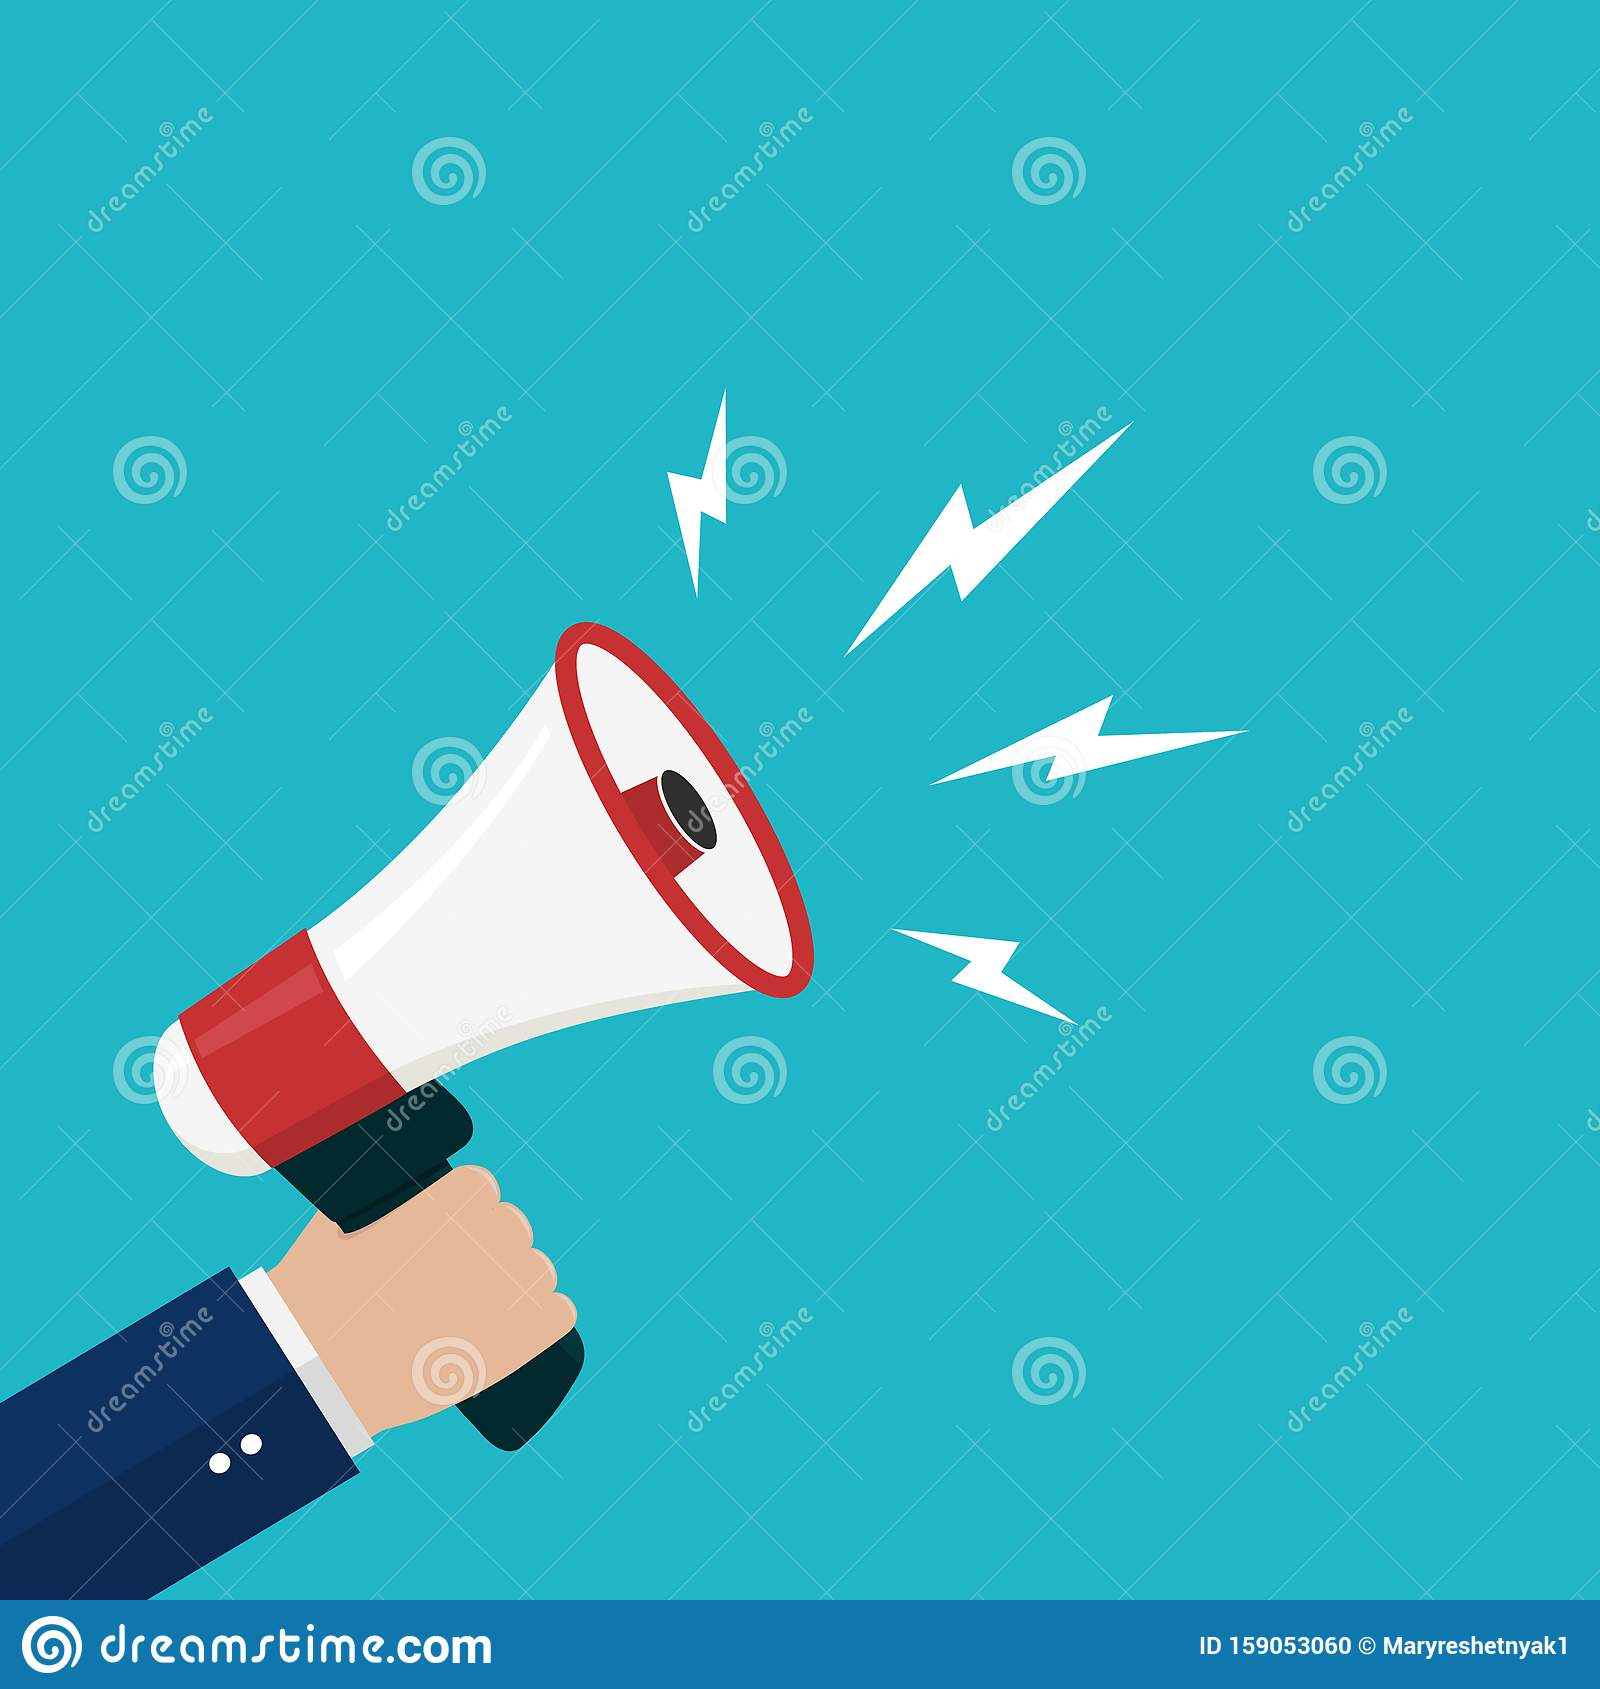 Cartoon hand holding loudspeaker, loud voice horn, megaphone.Flat banner with person shout message.Sound from megaphone for social